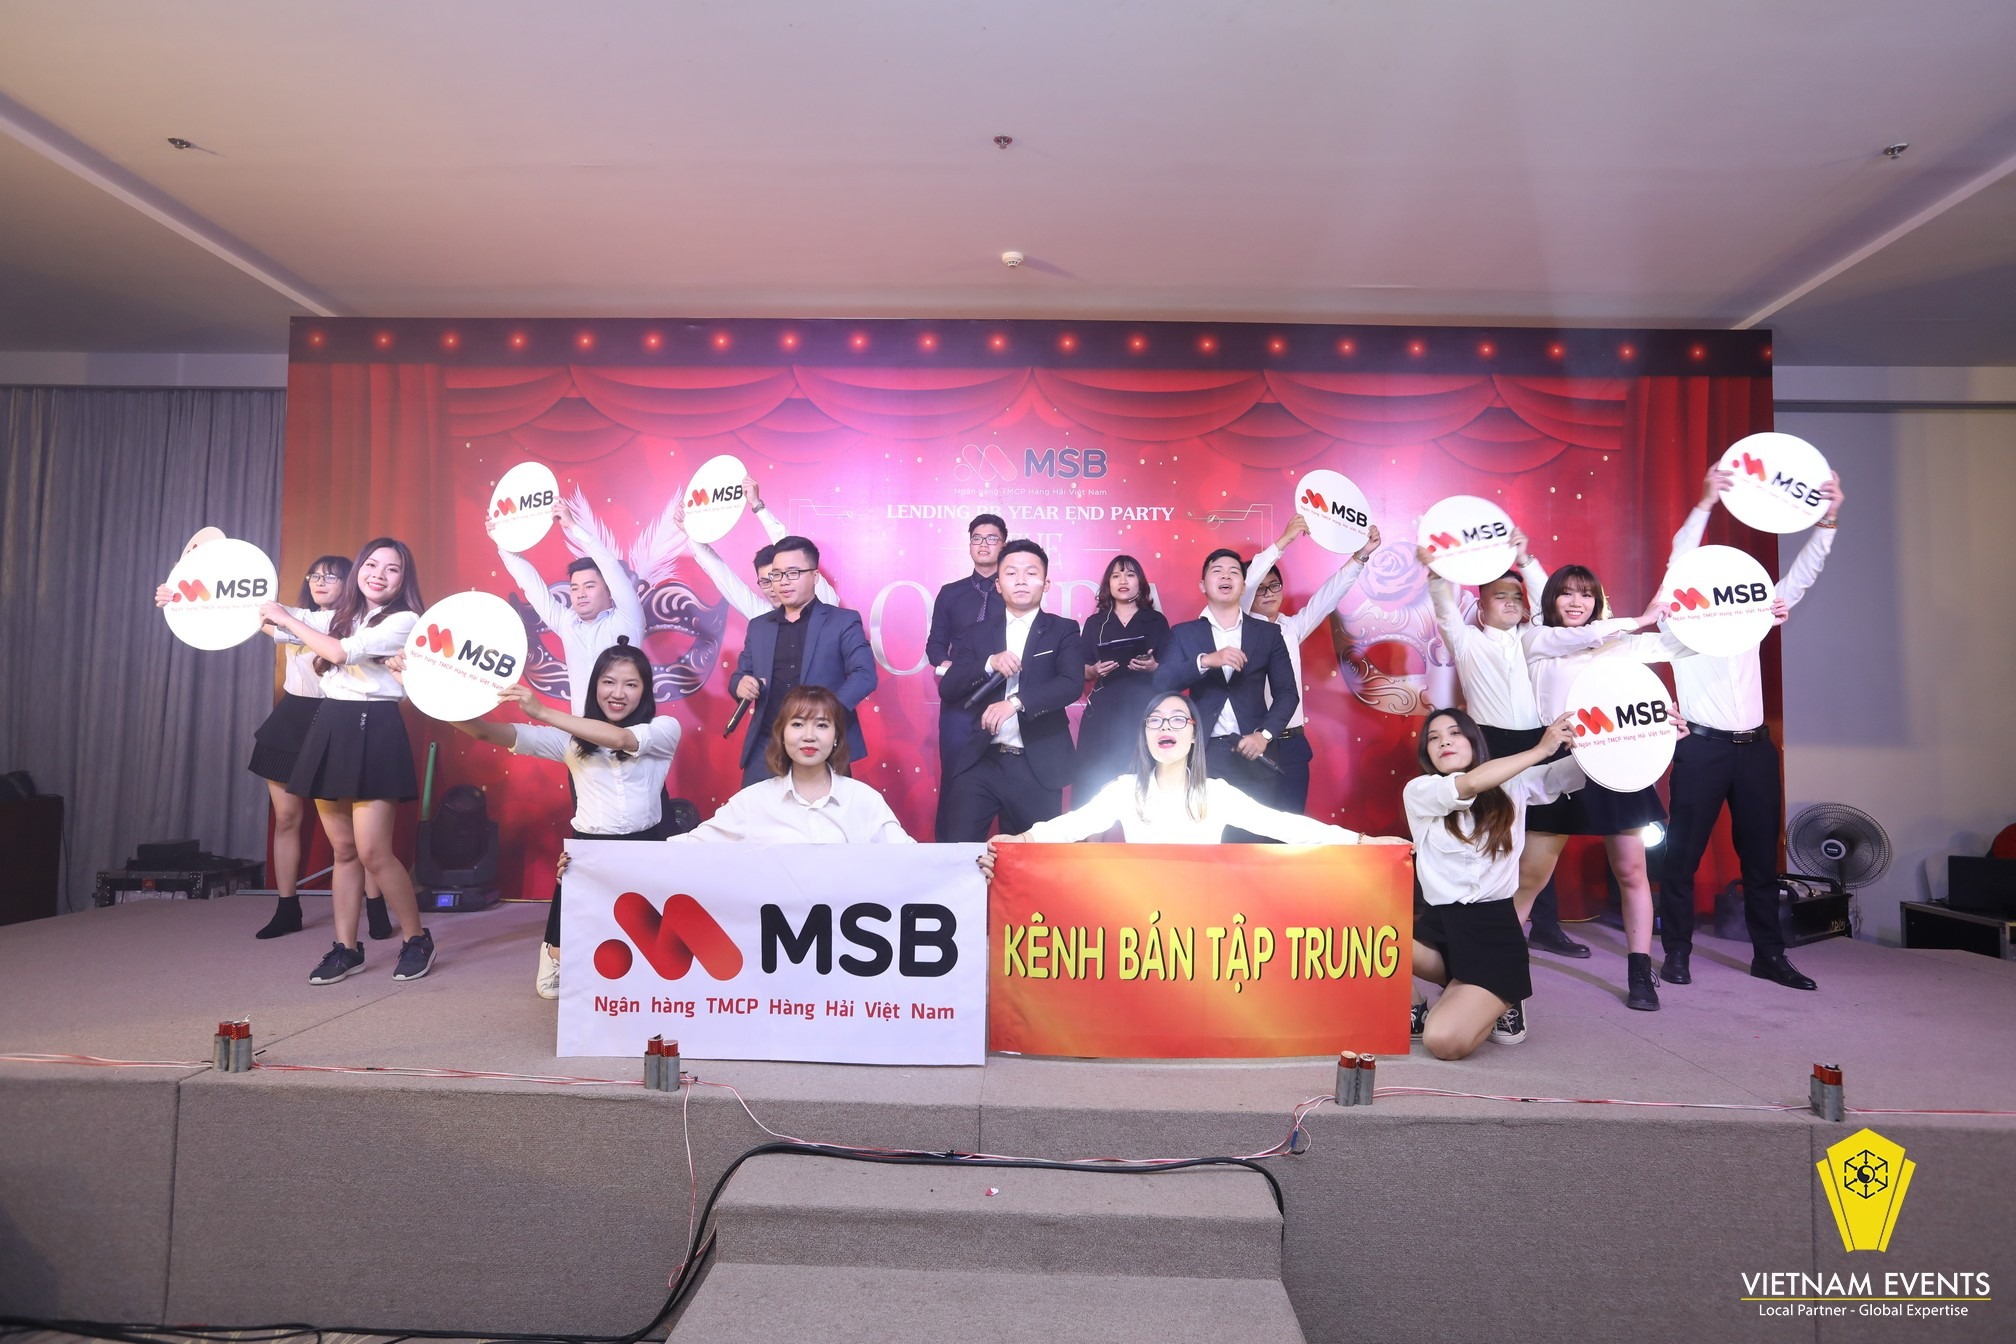 MARITIME BANK YEAR-END PARTY 2019